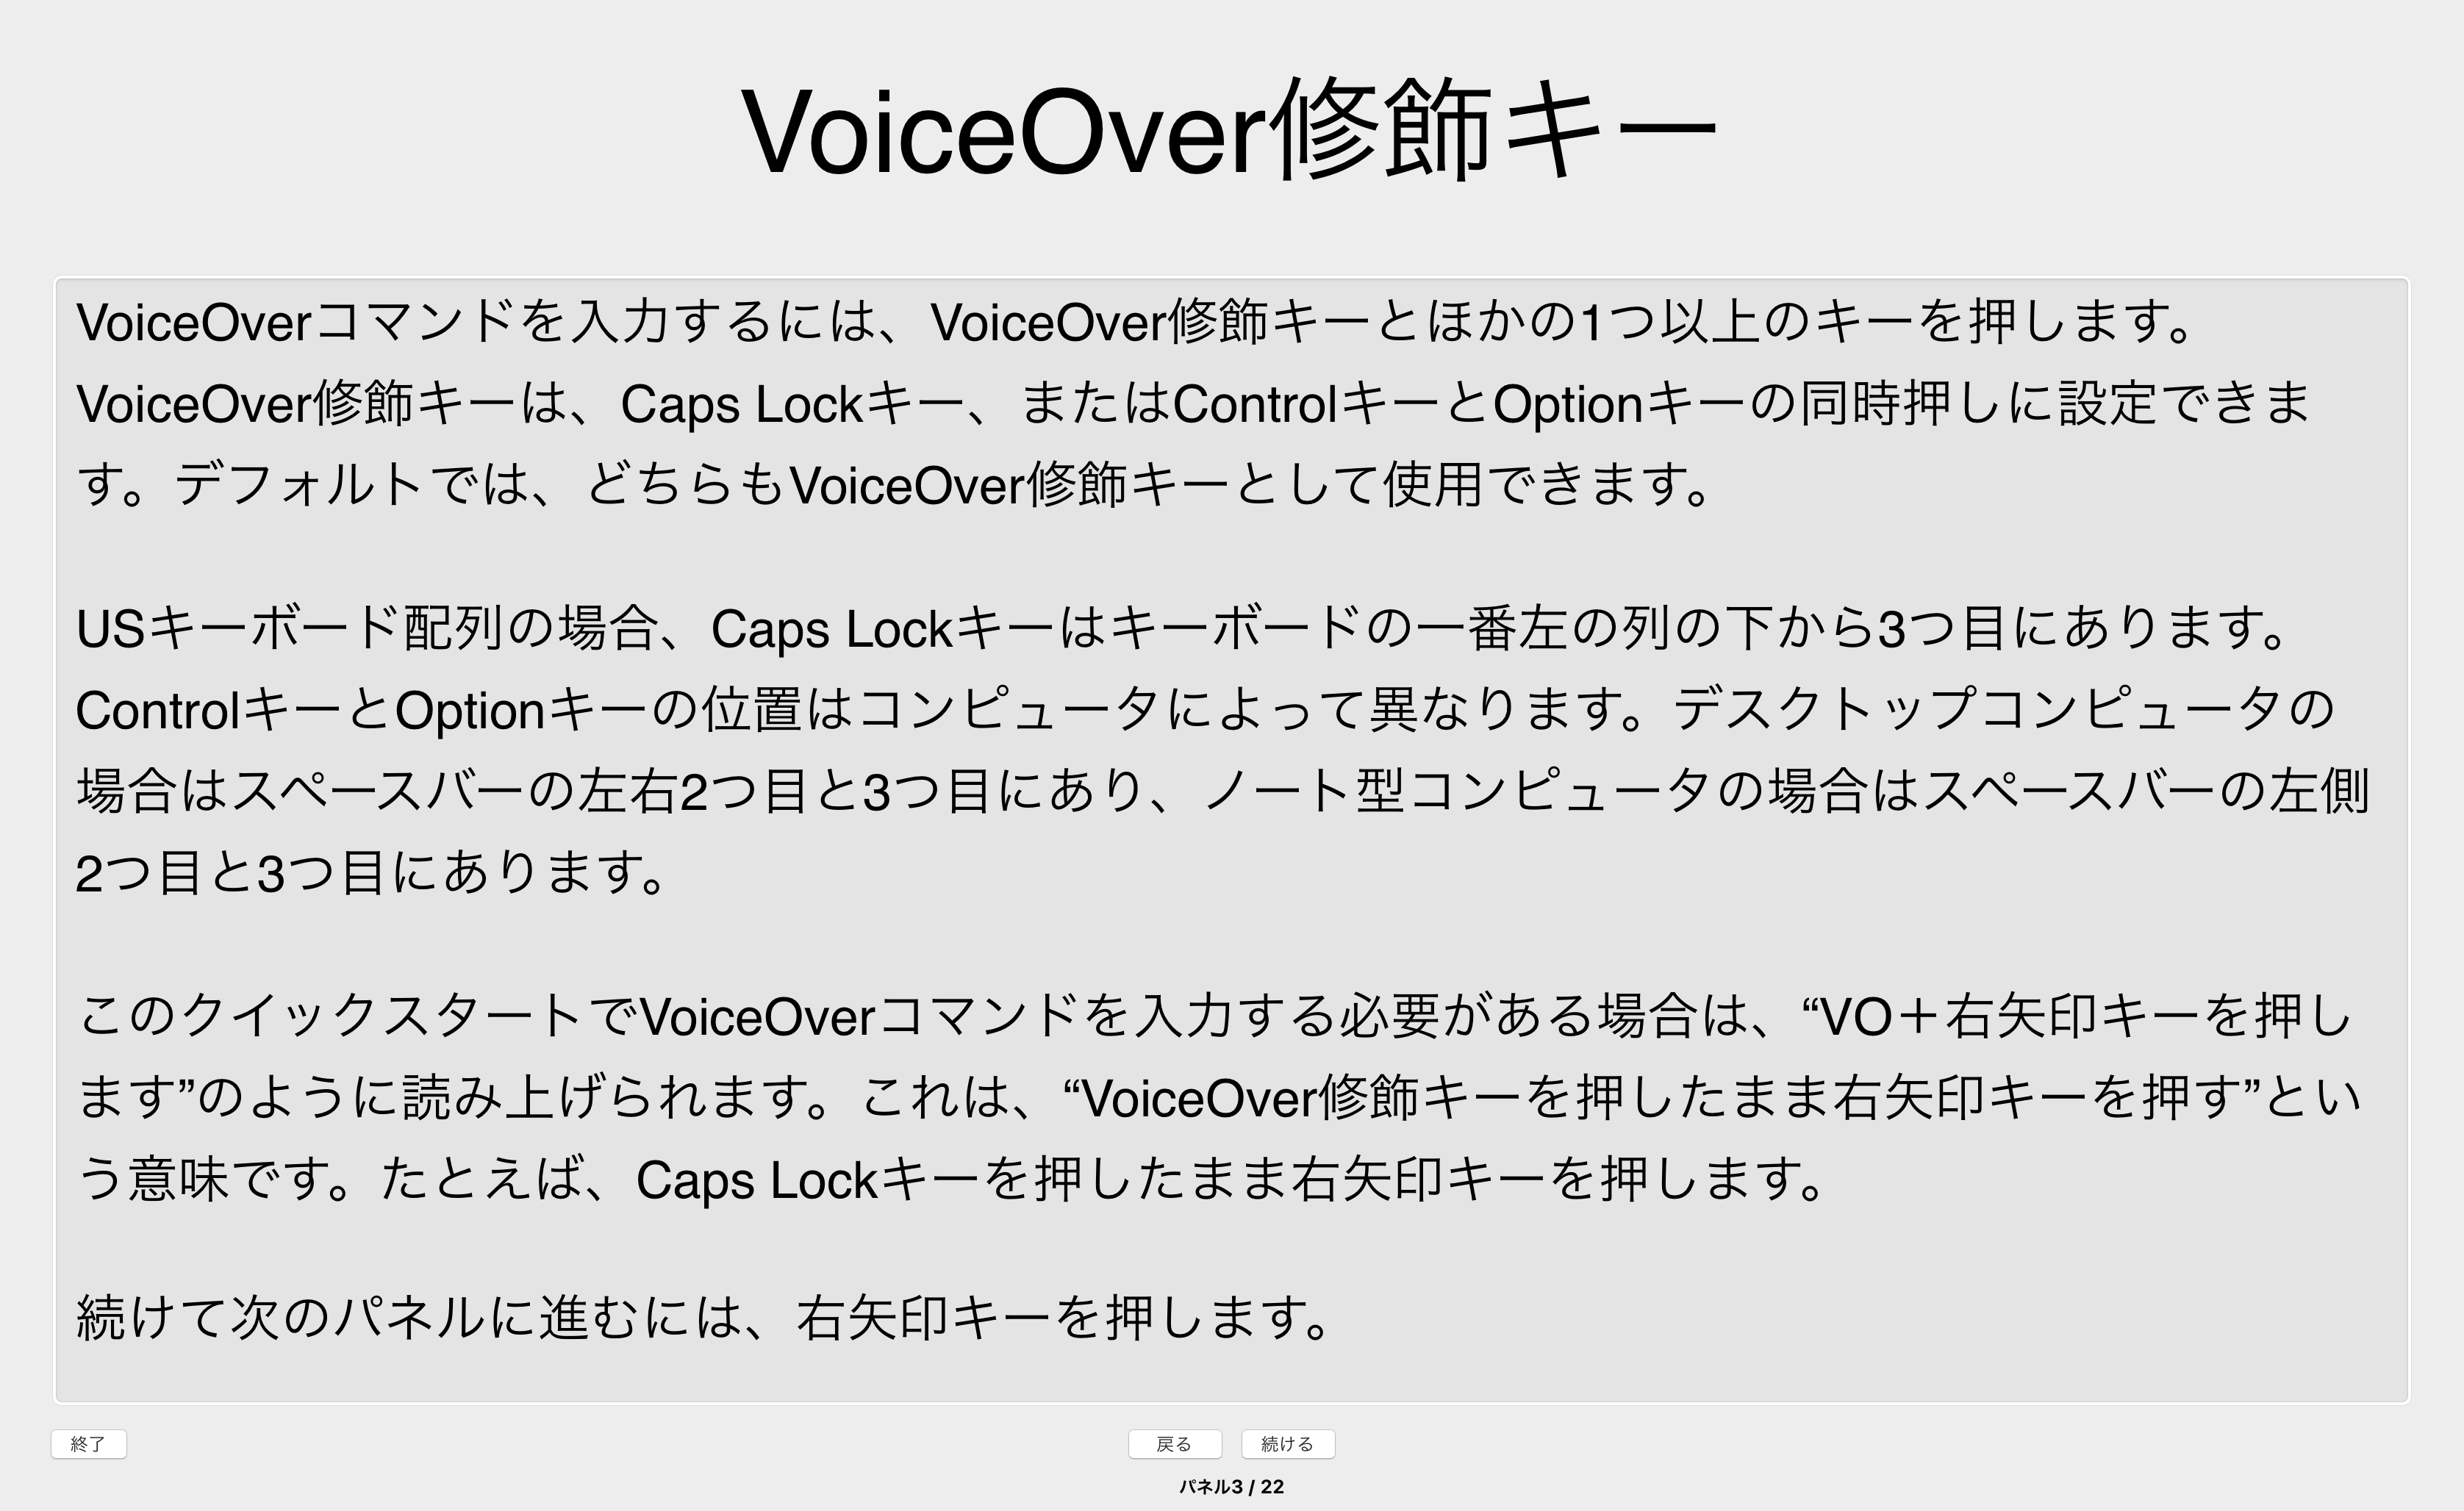 VoiceOver修飾キー.png